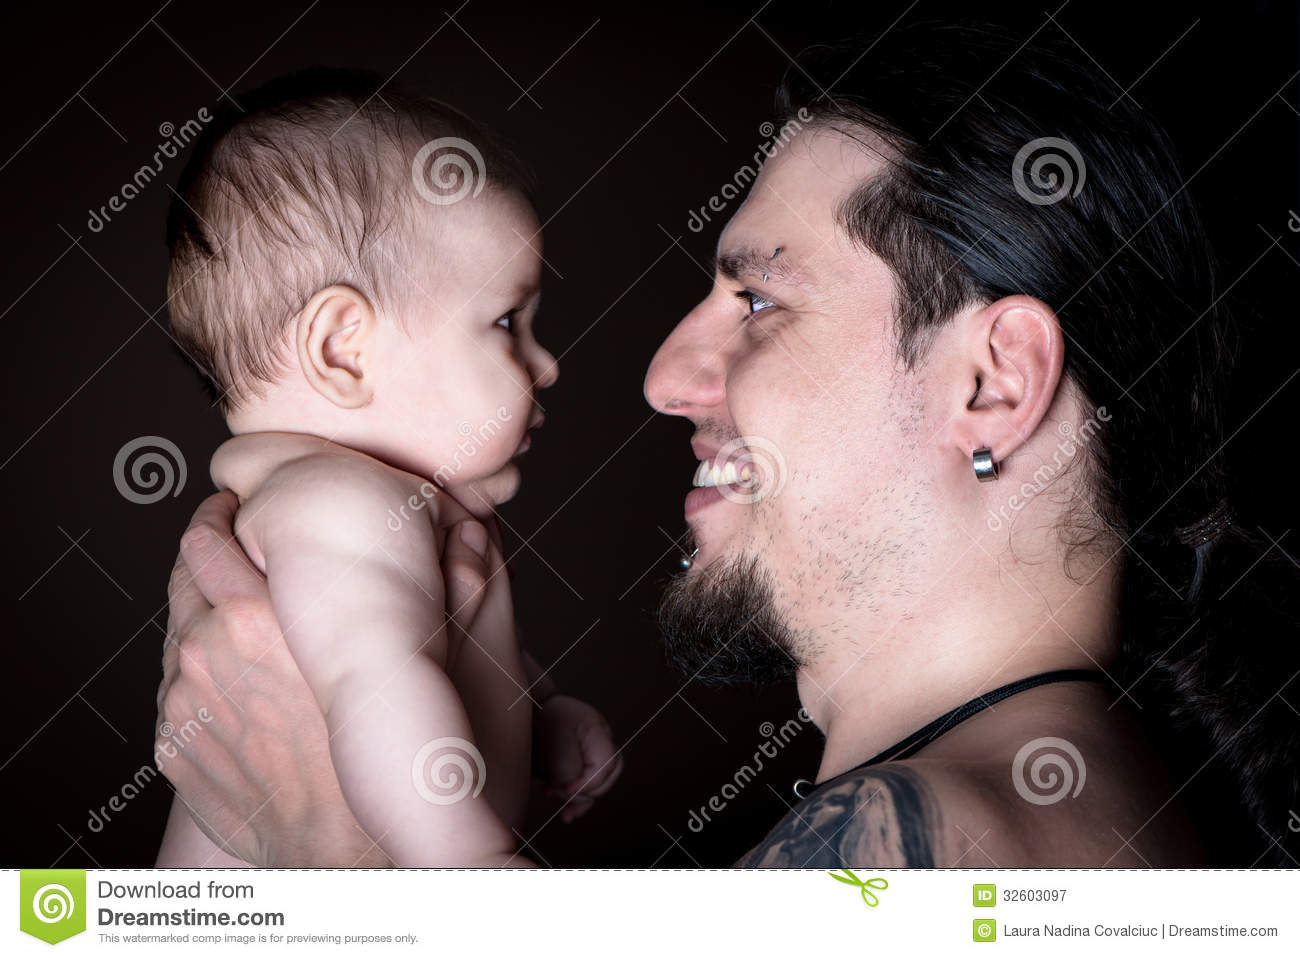 Studio shot of a young father with tattoos holding his infant child